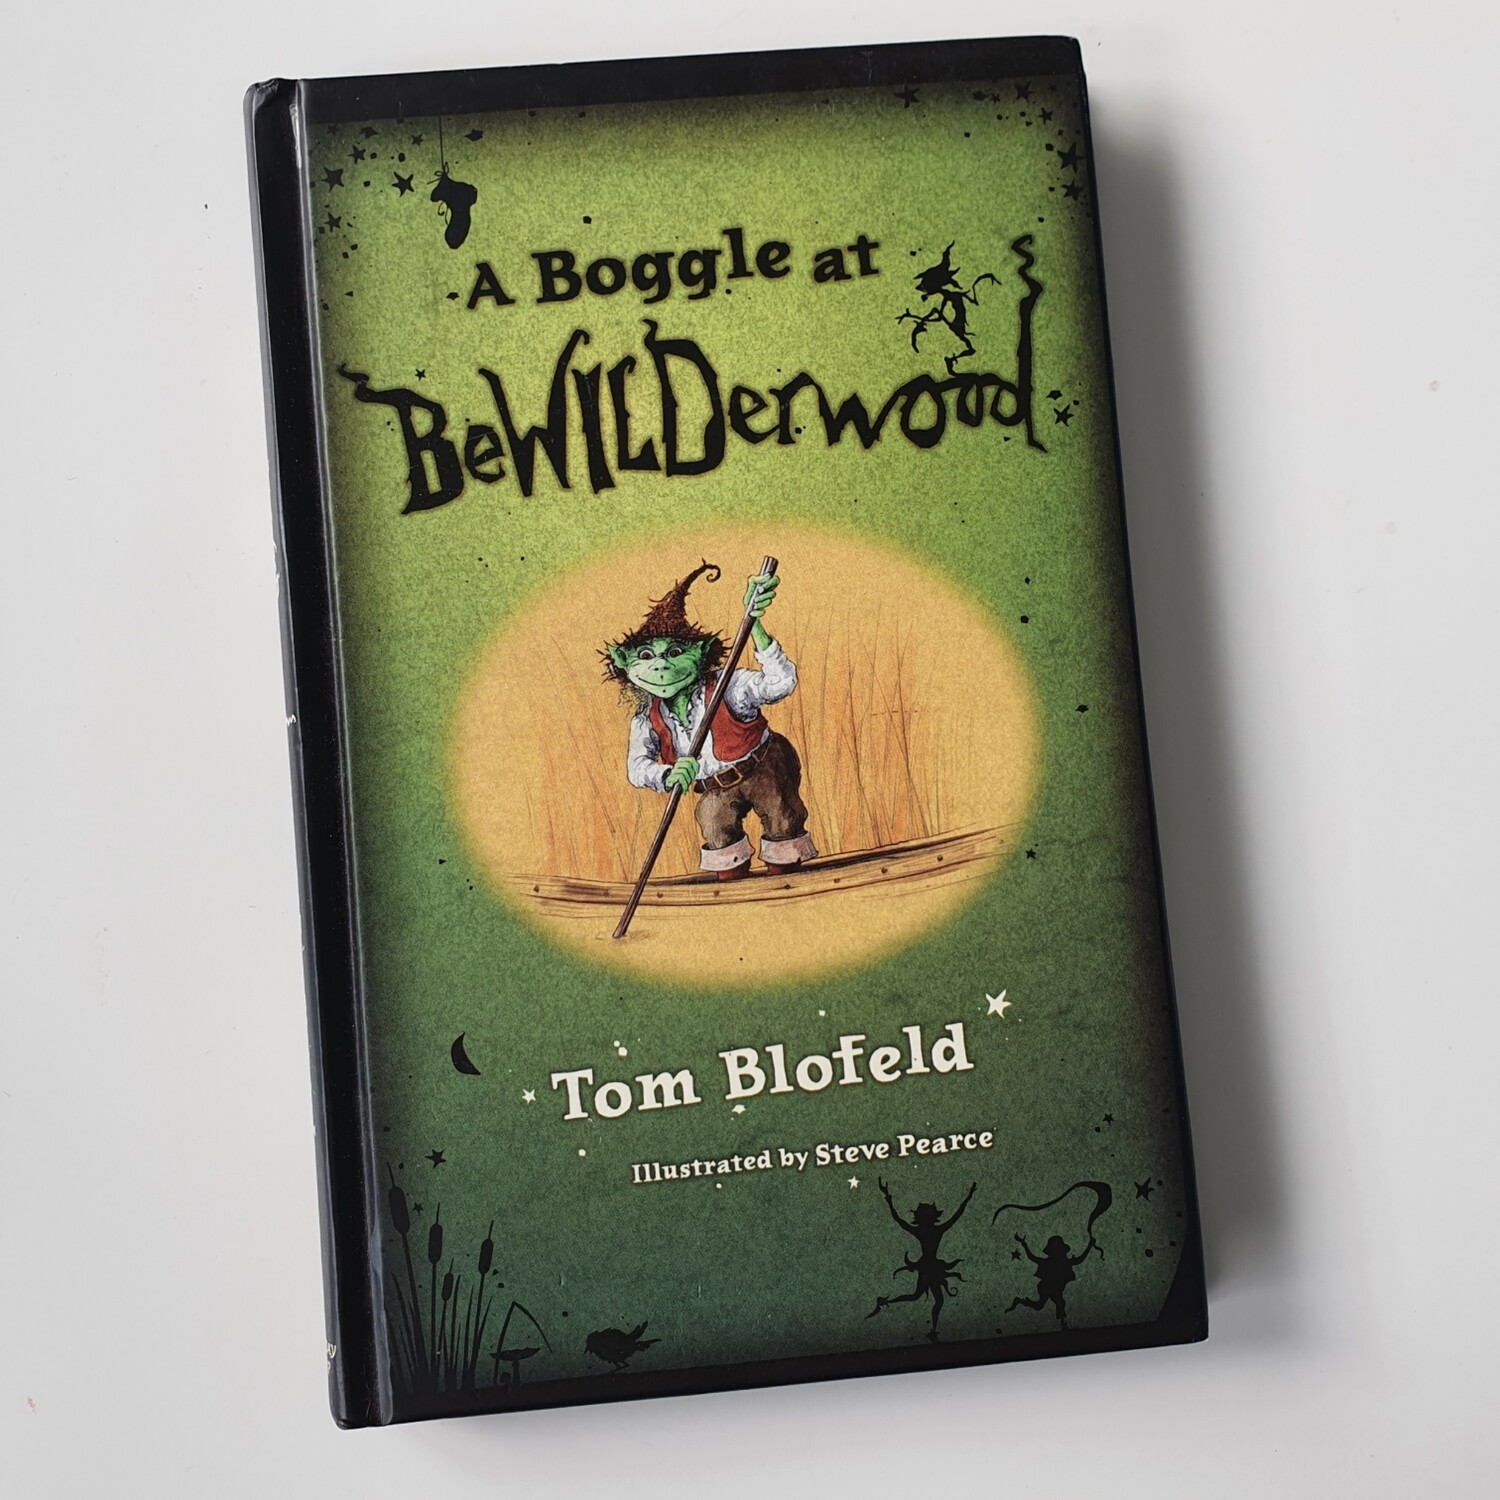 A Boggle at Bewilderwood Notebook